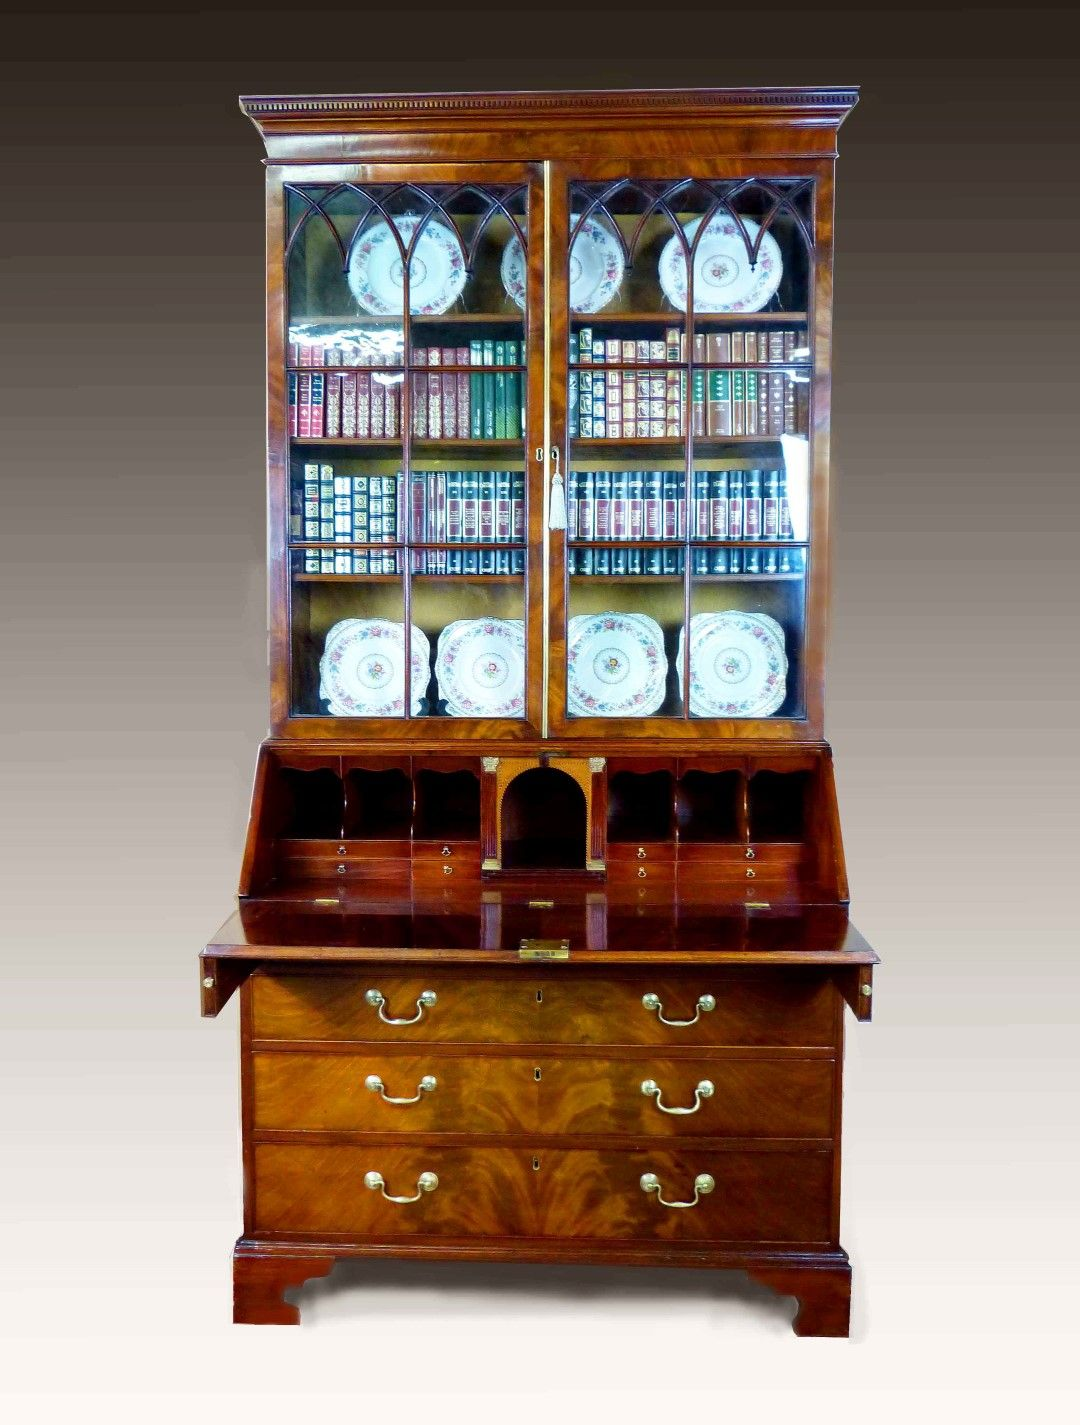 Antique furniture antique cupboards antique tables antique comfortable - Bureau secretaire antique ...